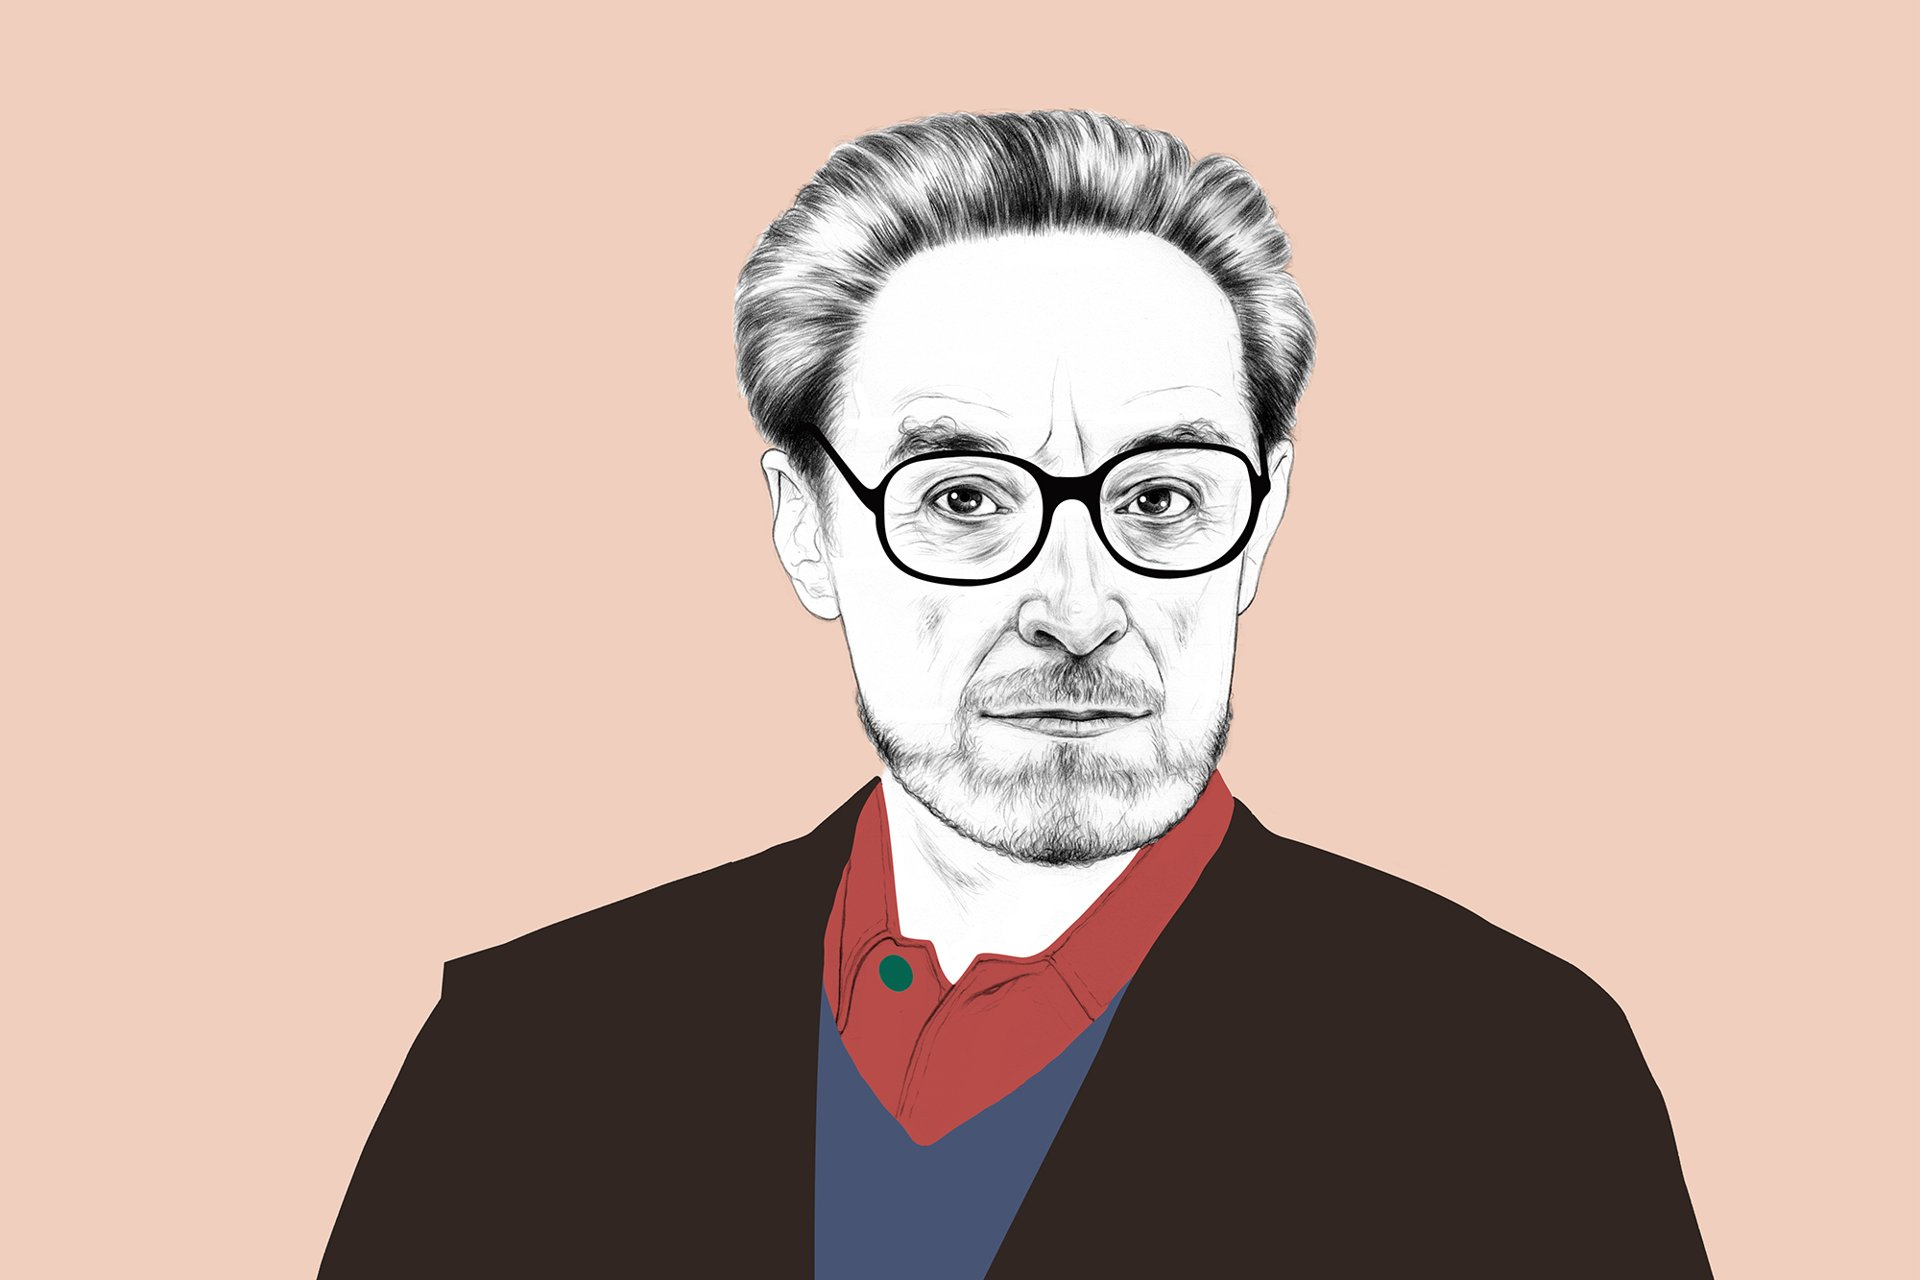 essay survival auschwitz primo levi In primo levi's autobiography, survival in auschwitz, he identifies some major factors which he can attribute to his survival including the physical state of a.